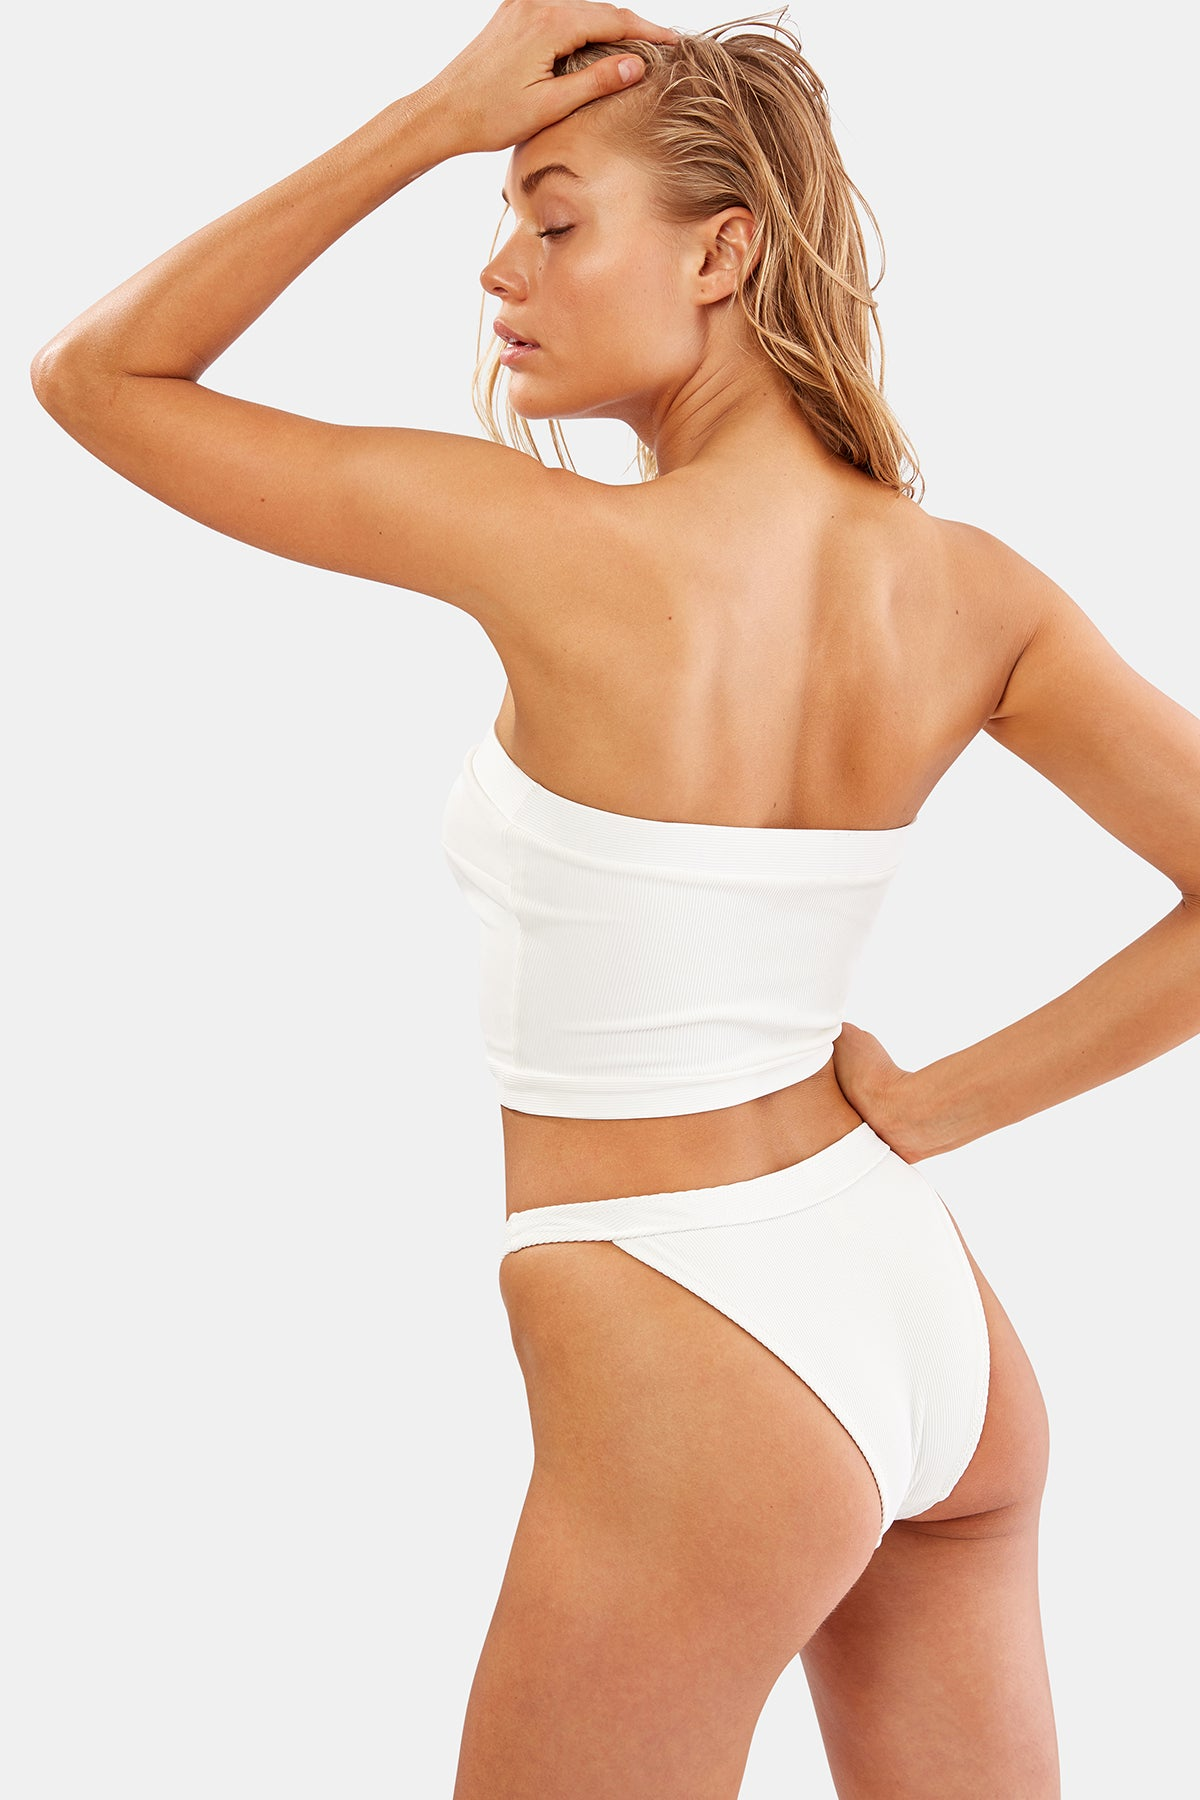 The Venice Bikini - Solid & Striped